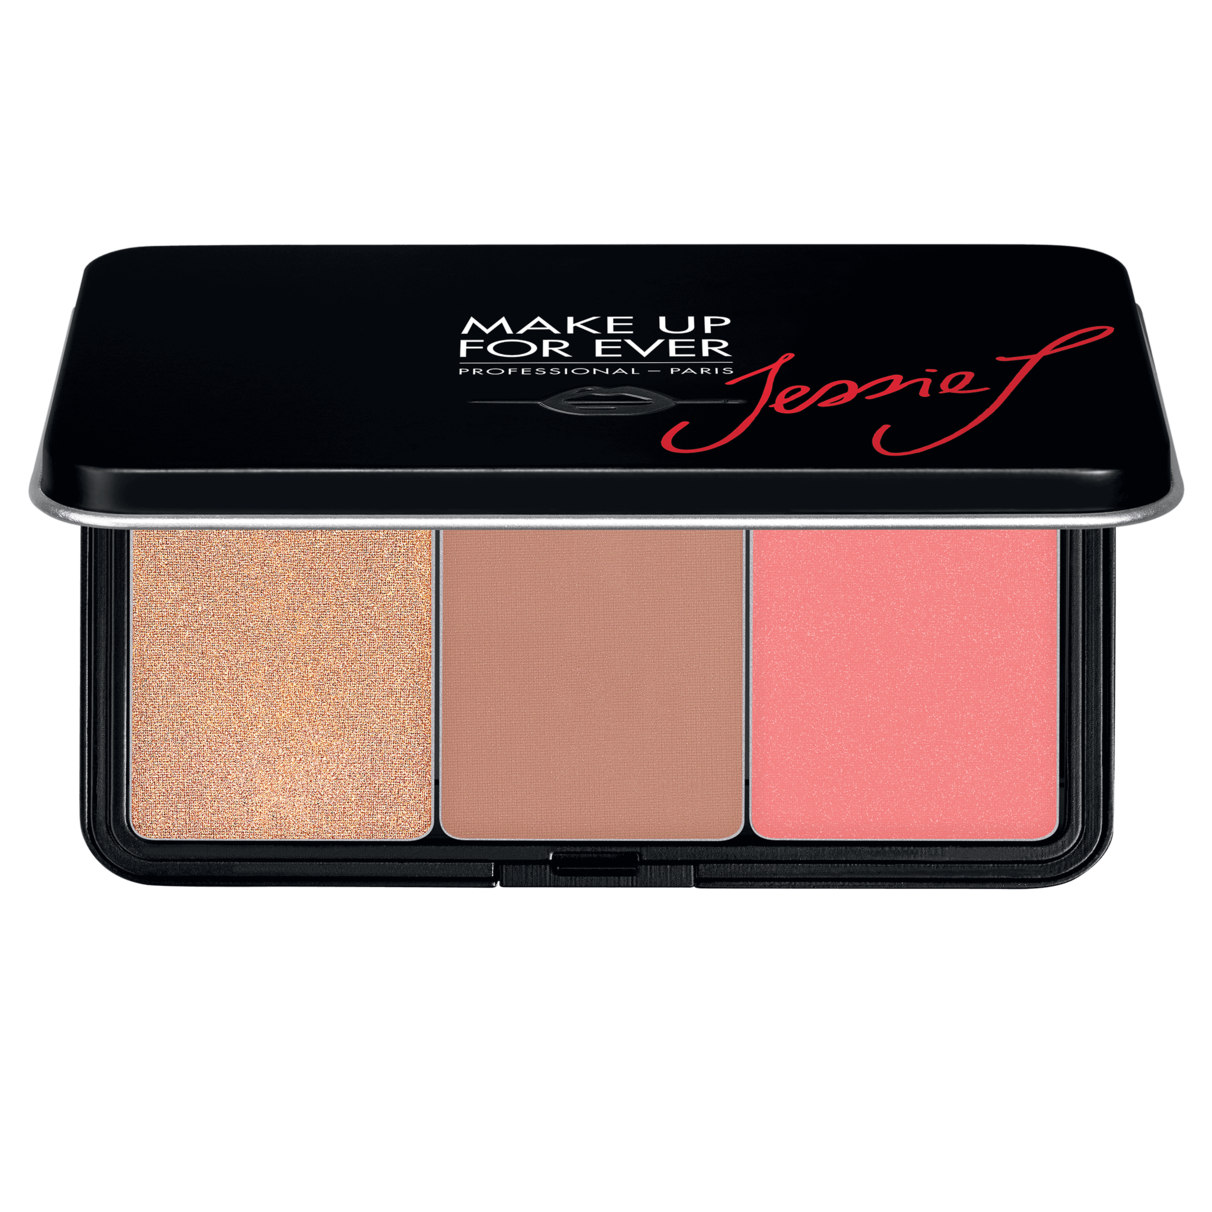 MAKE UP FOR EVER Artist Face Color (Jessie J) Limited Edition Trio Palette